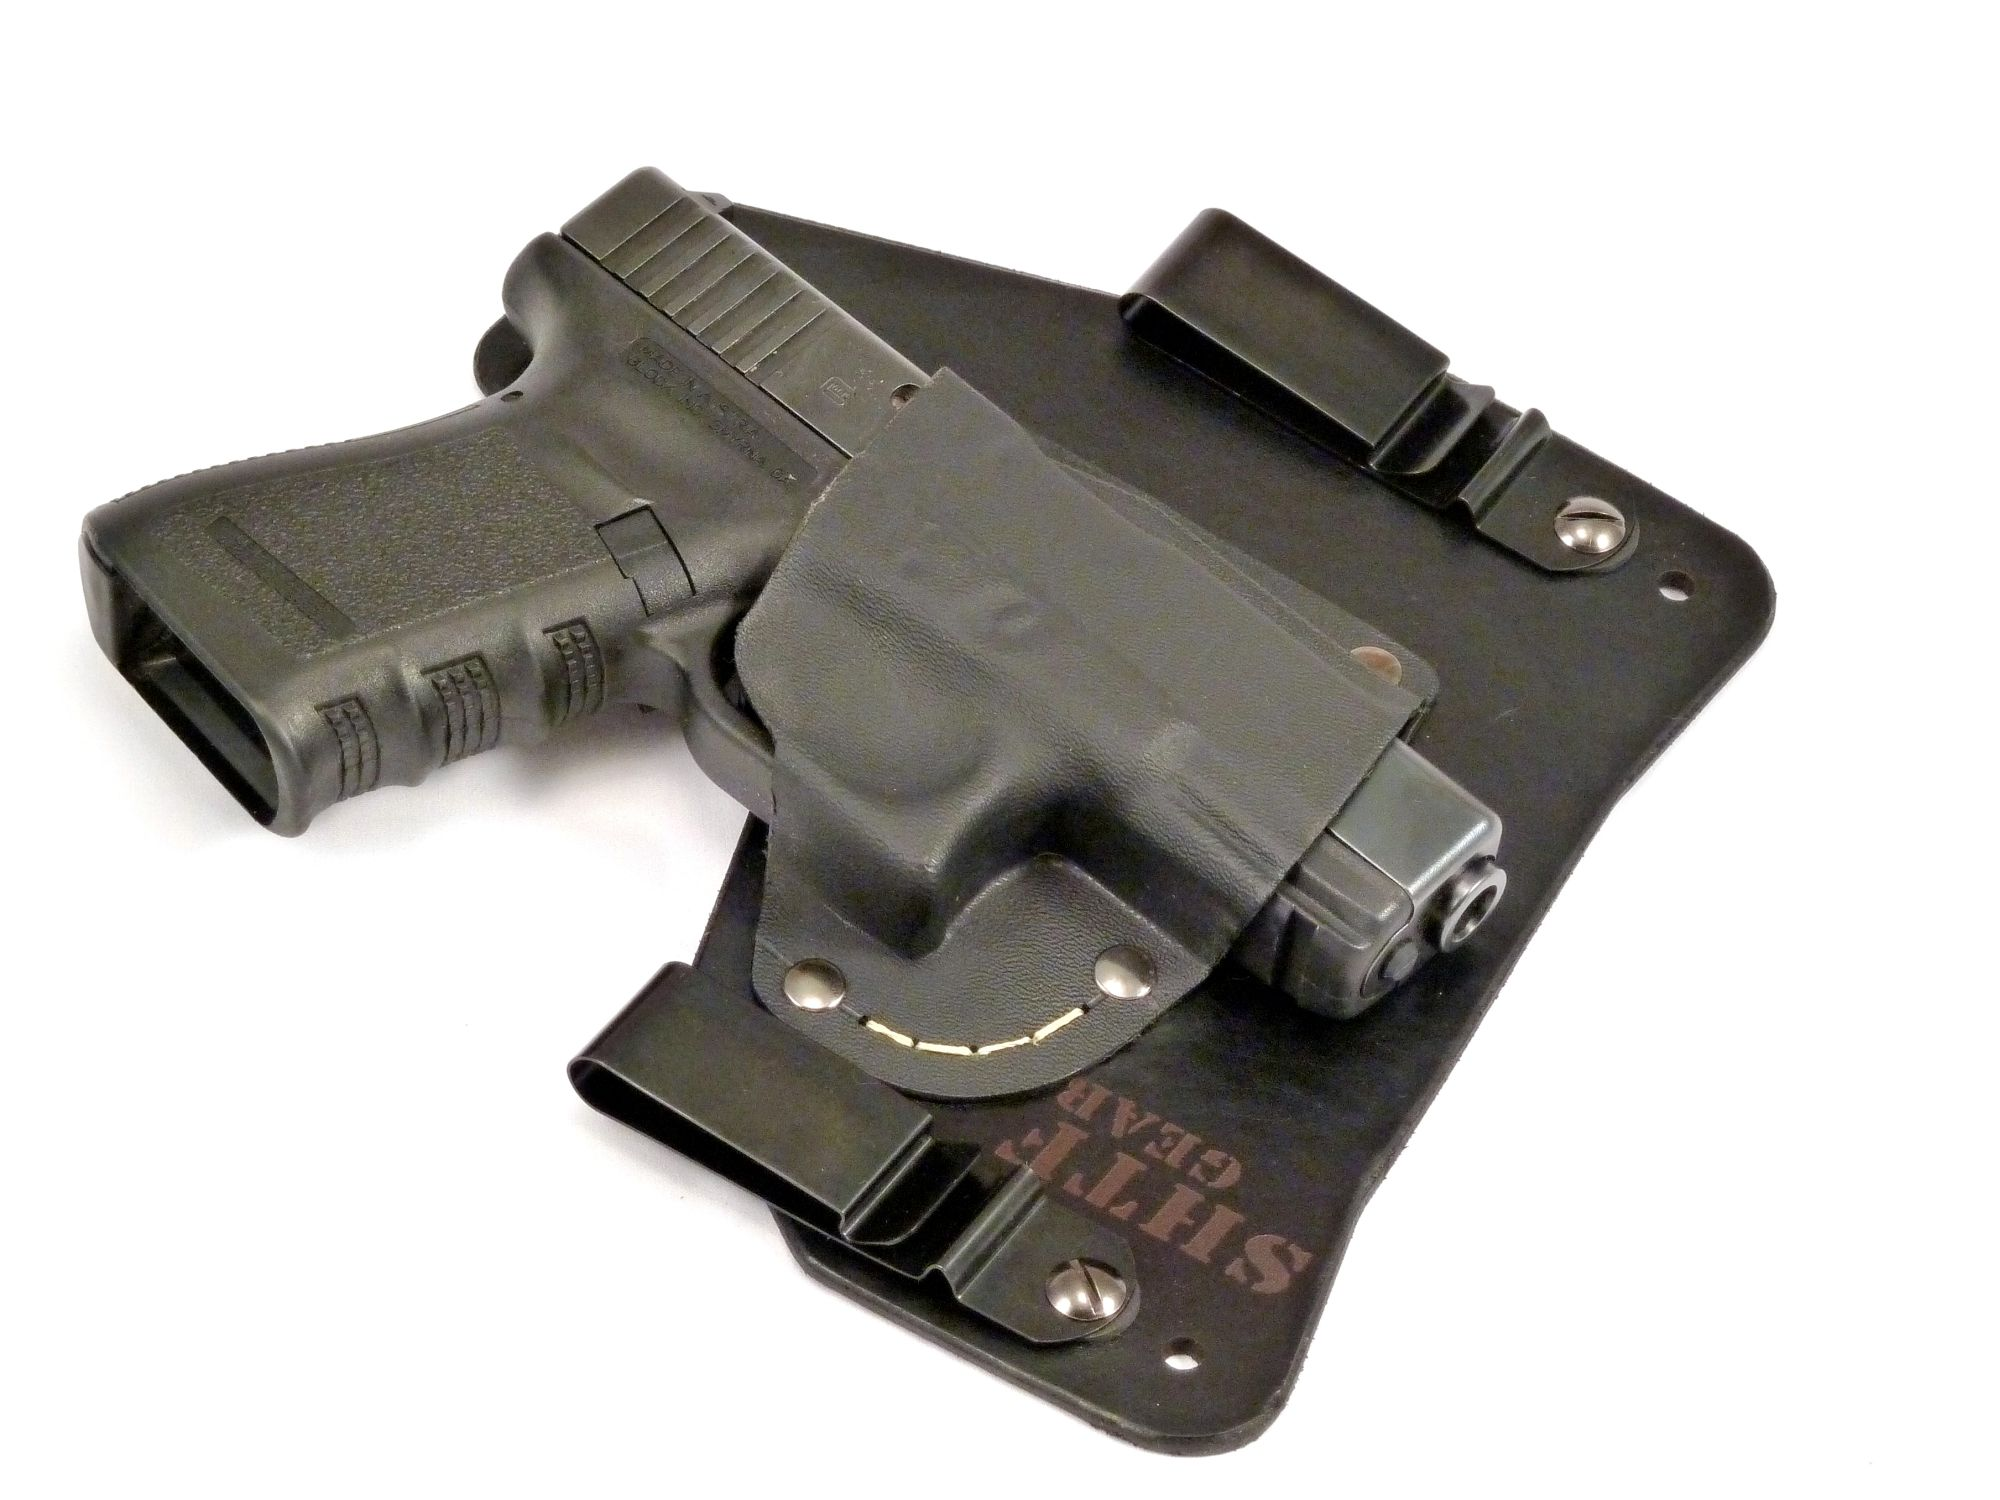 advice on holsters for G23-glock-gun-front-left-1500.jpg